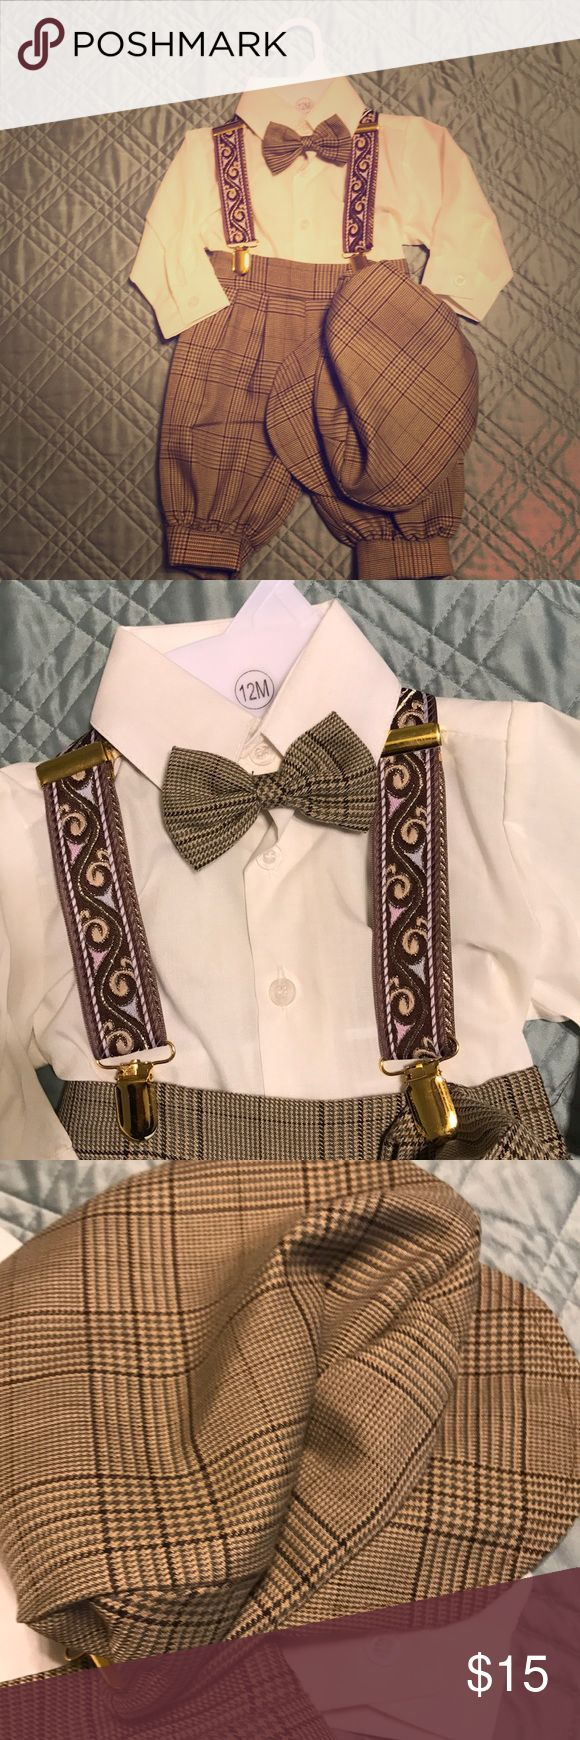 Boy outfit Like new- only worn once! Super cute baby boy outfit with hat, bow-tie, suspenders, knickers, and shirt! Perfect for pictures or a wedding! Matching Sets